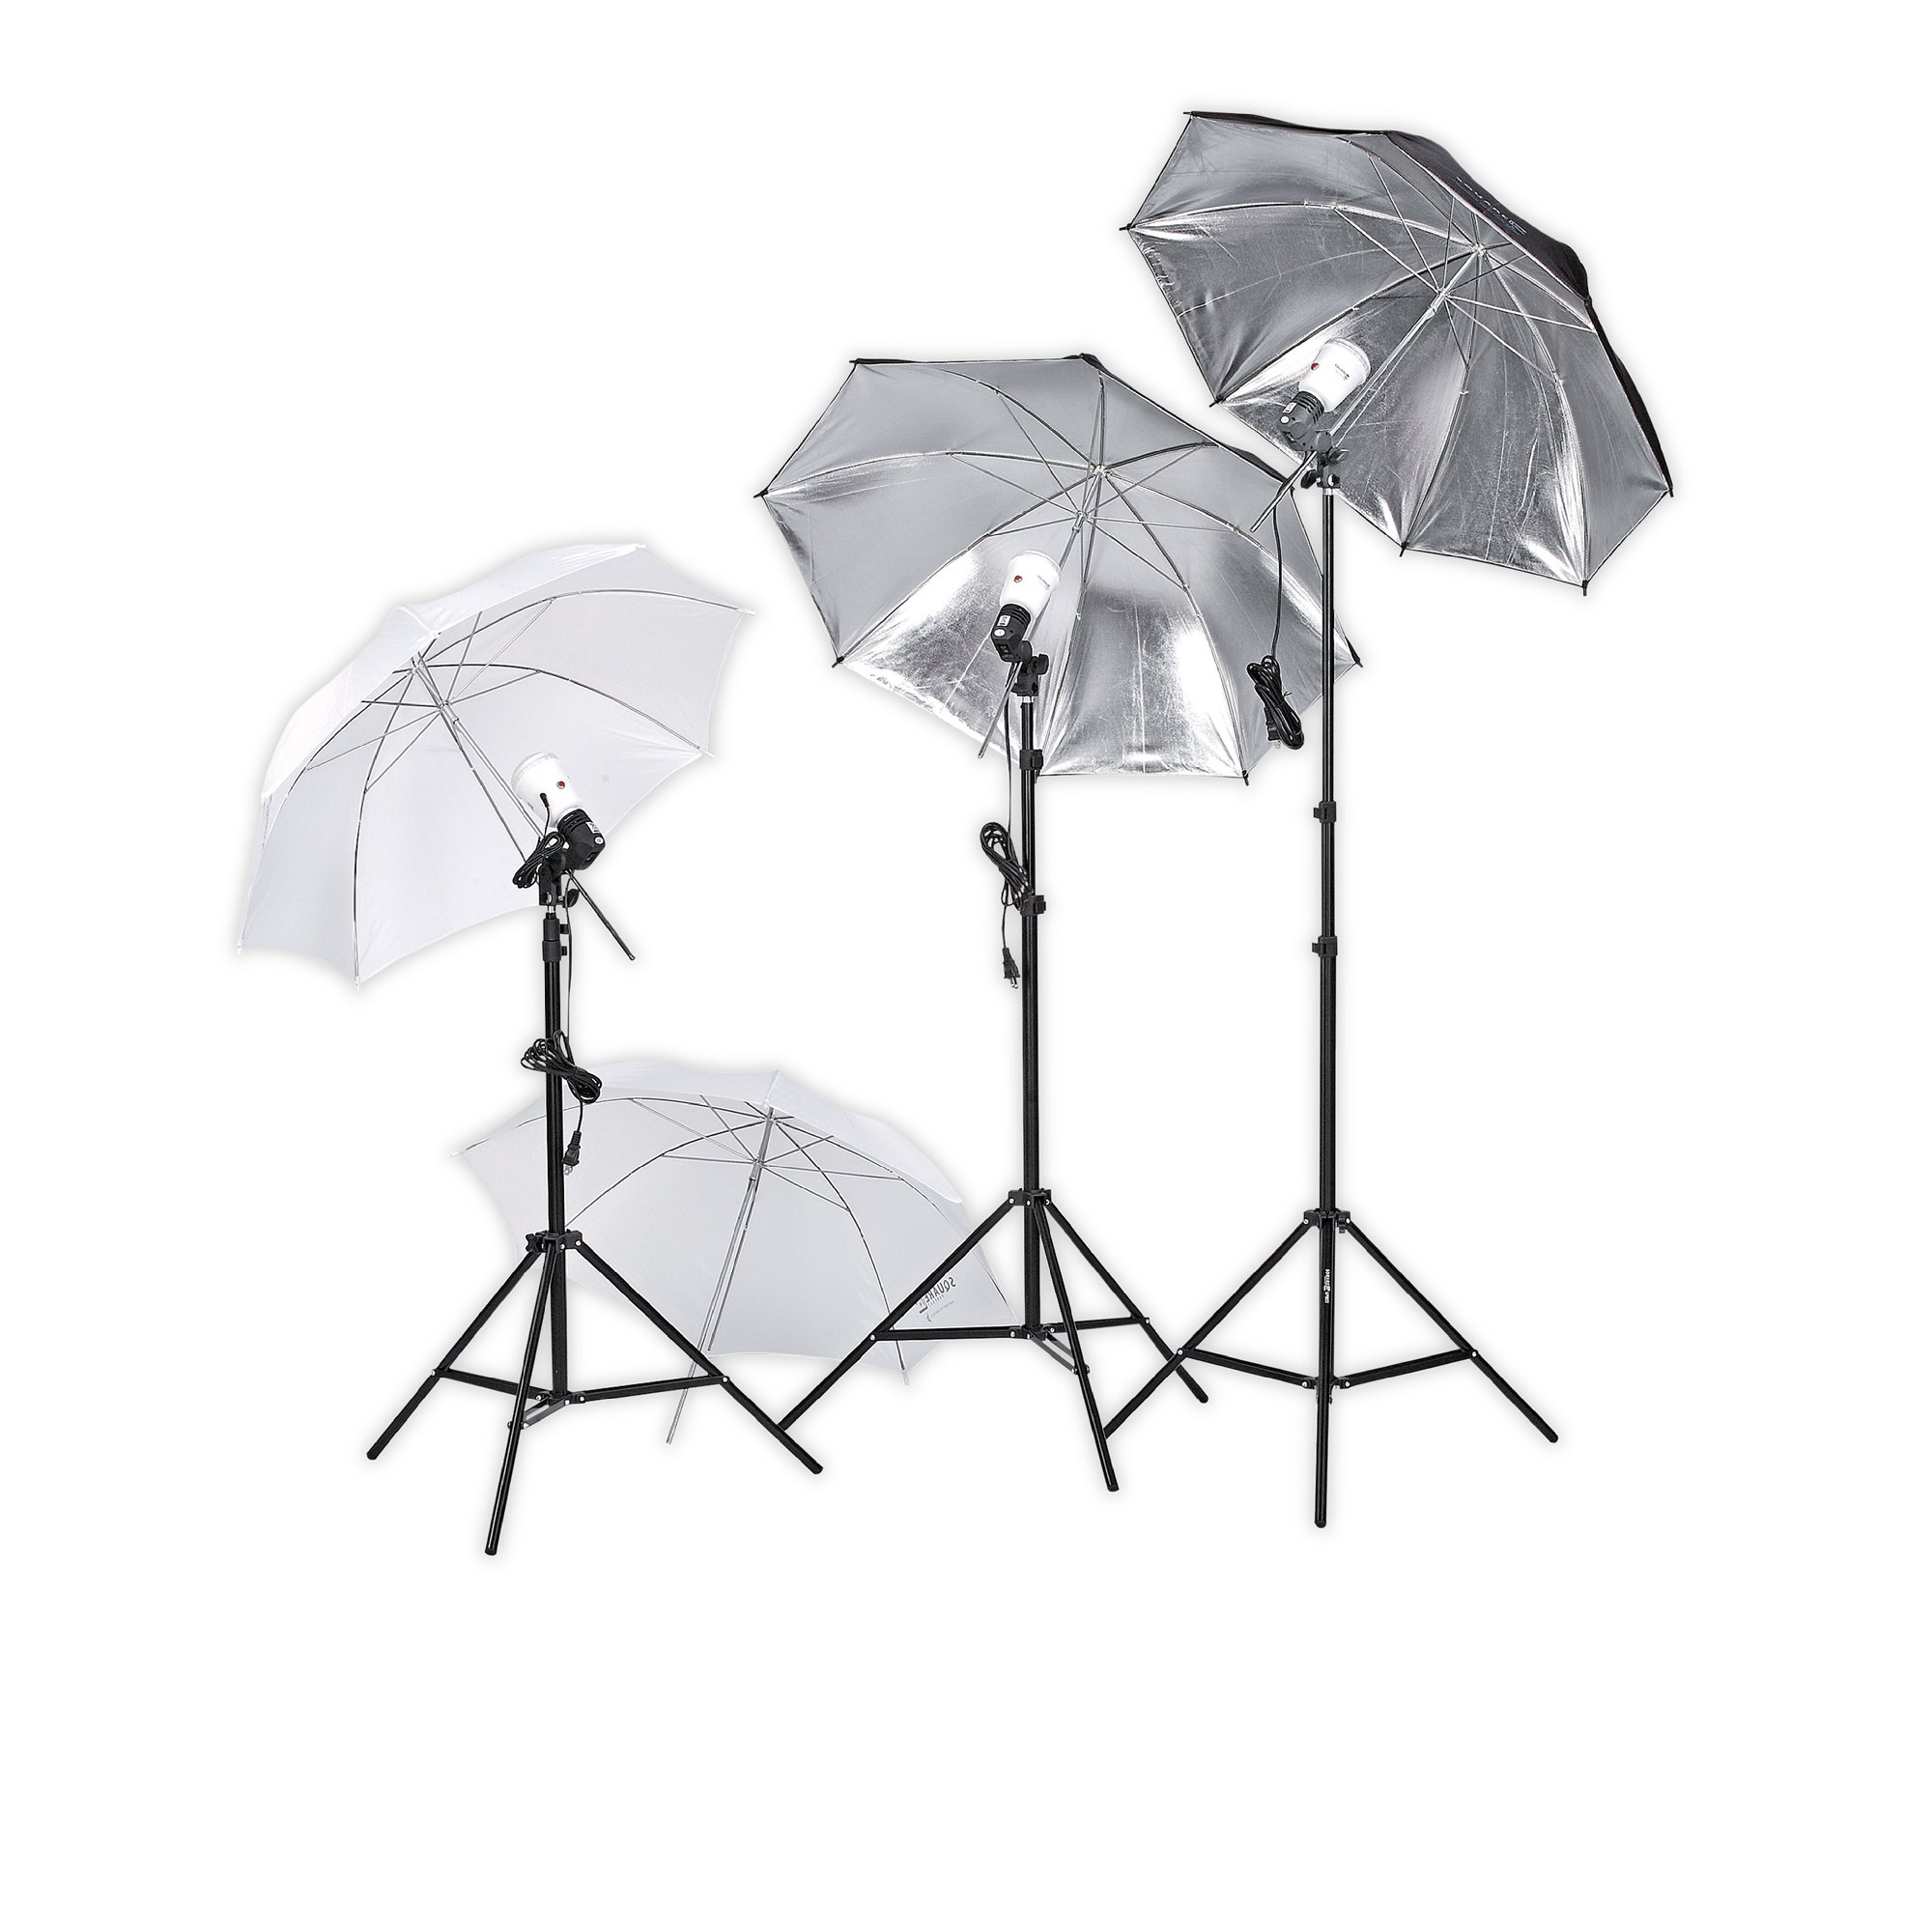 4500 Square Perfect Professional Quality Photography Studio Lighting Umbrella Soft Light Kit by SQUARE PERFECT